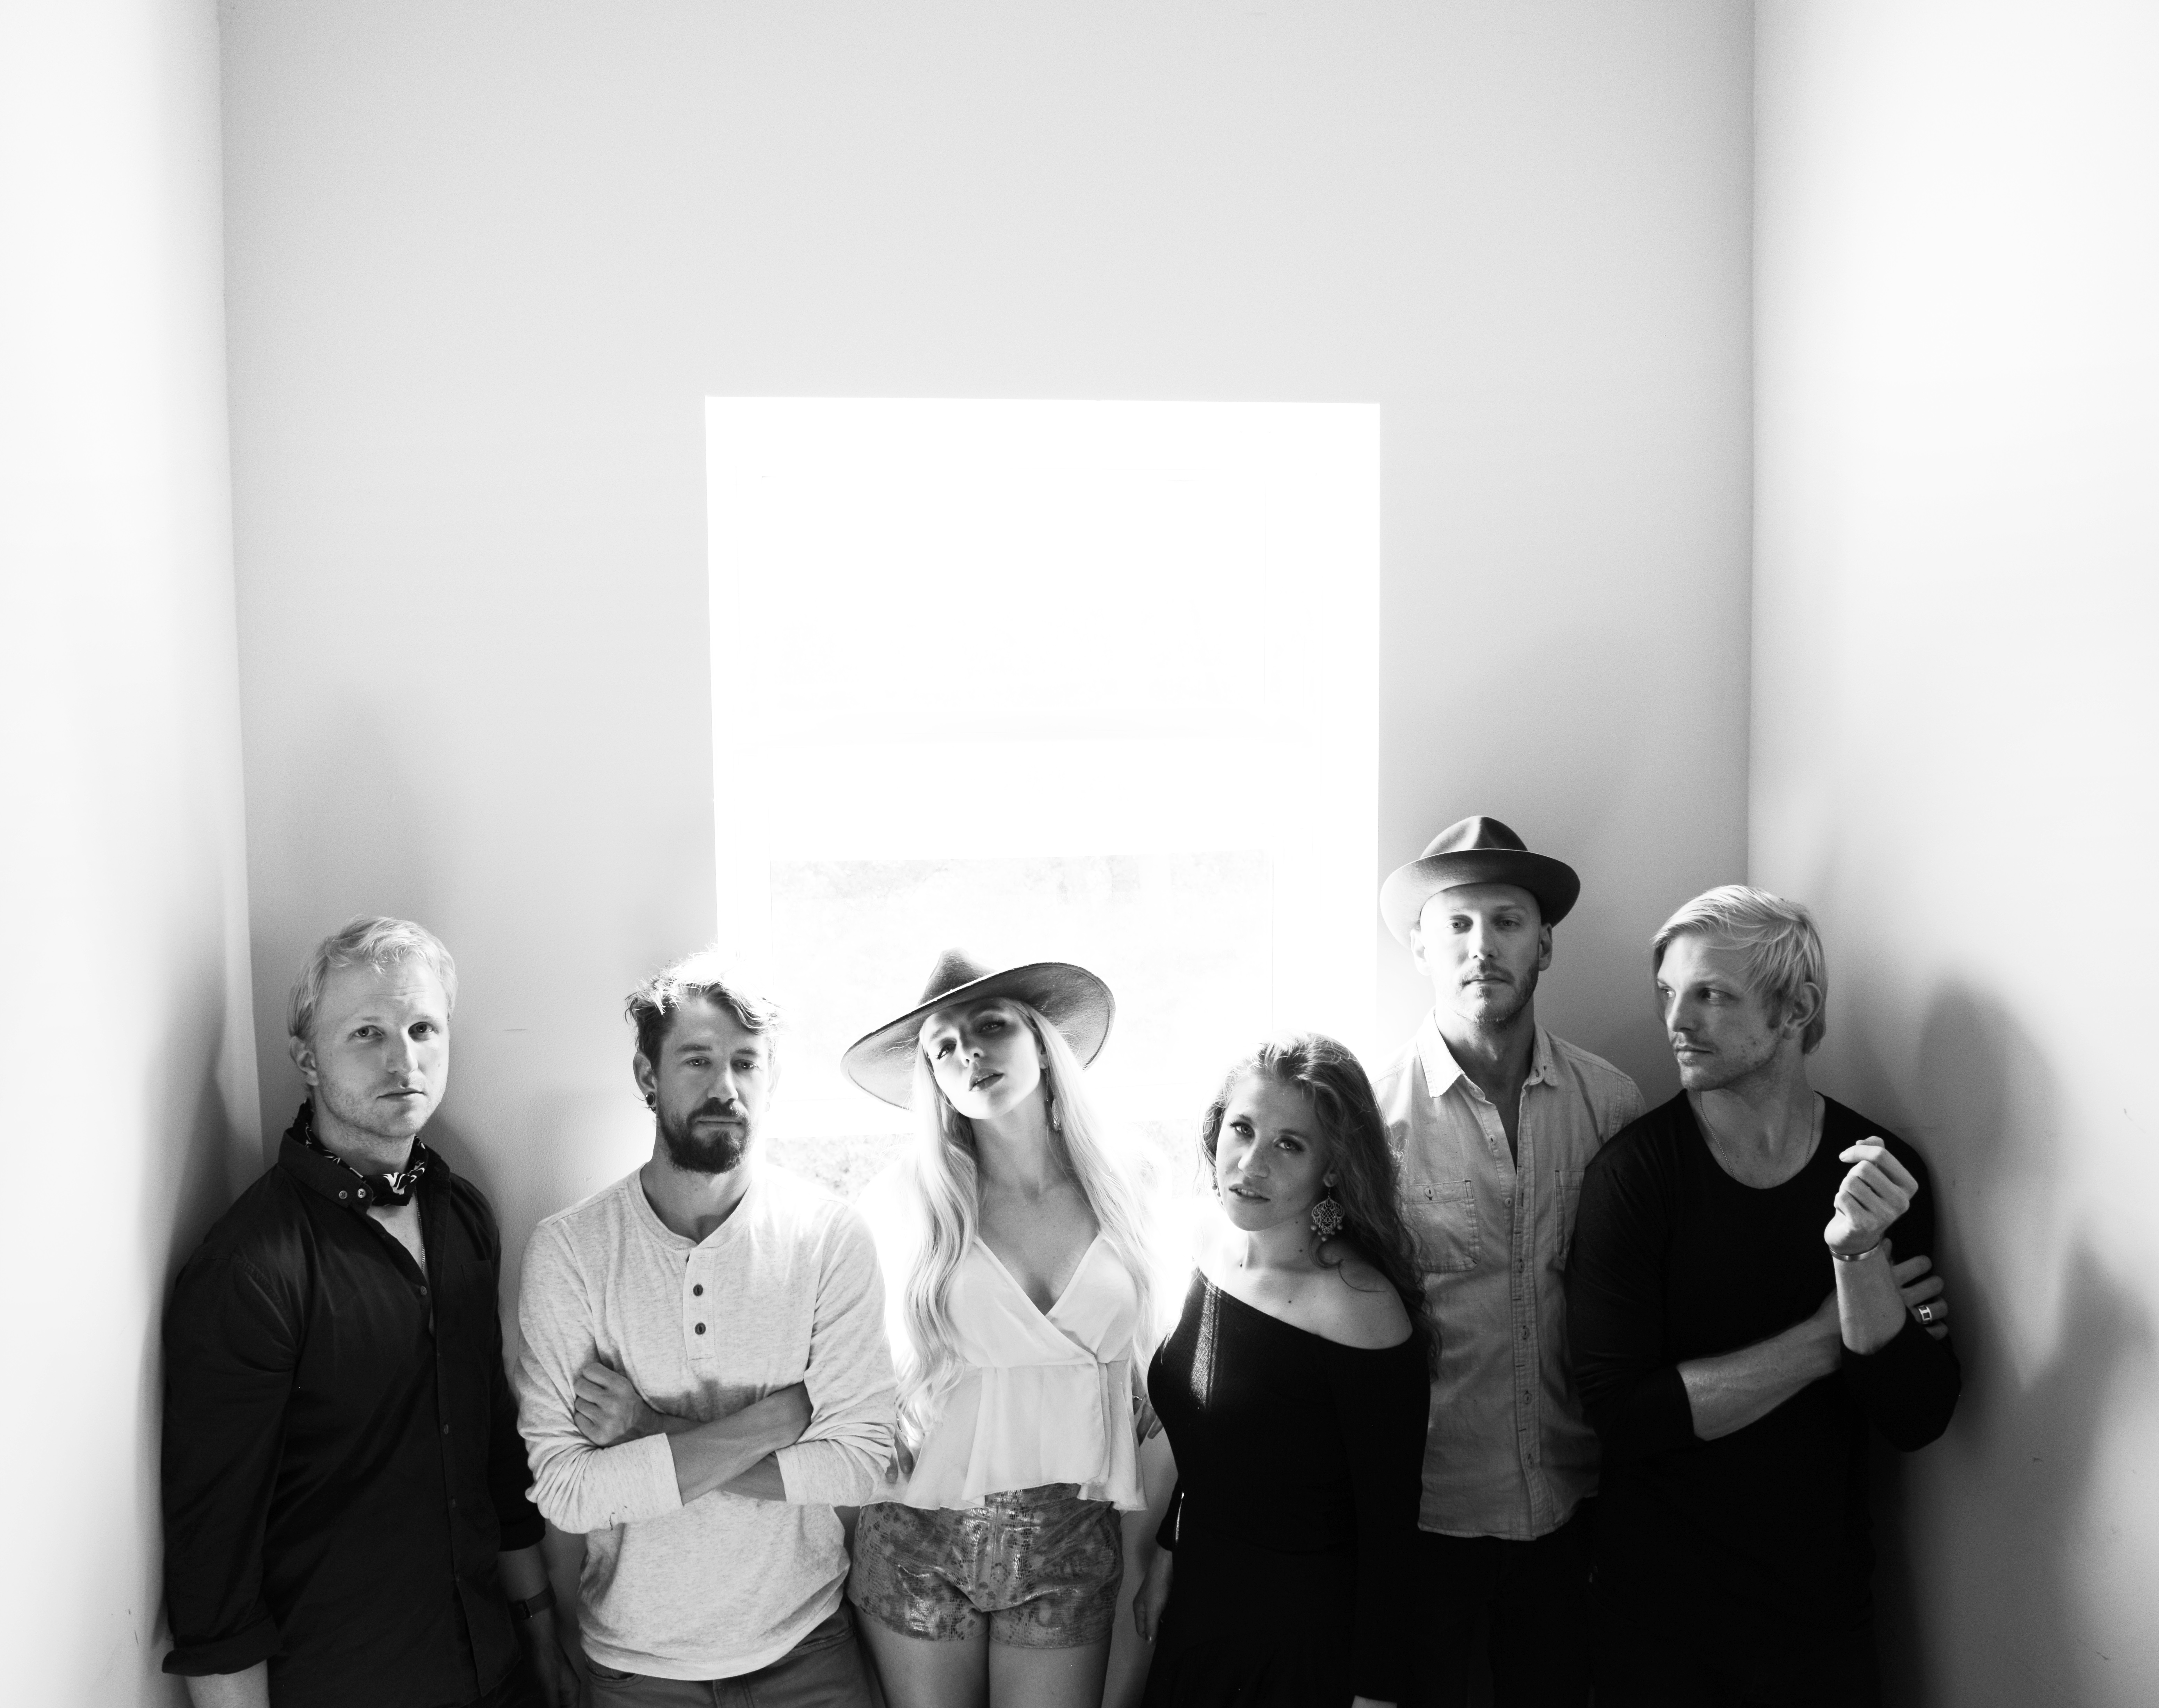 Delta Rae Used 'Personal Hardship' to Inspire 'No Peace in Quiet'